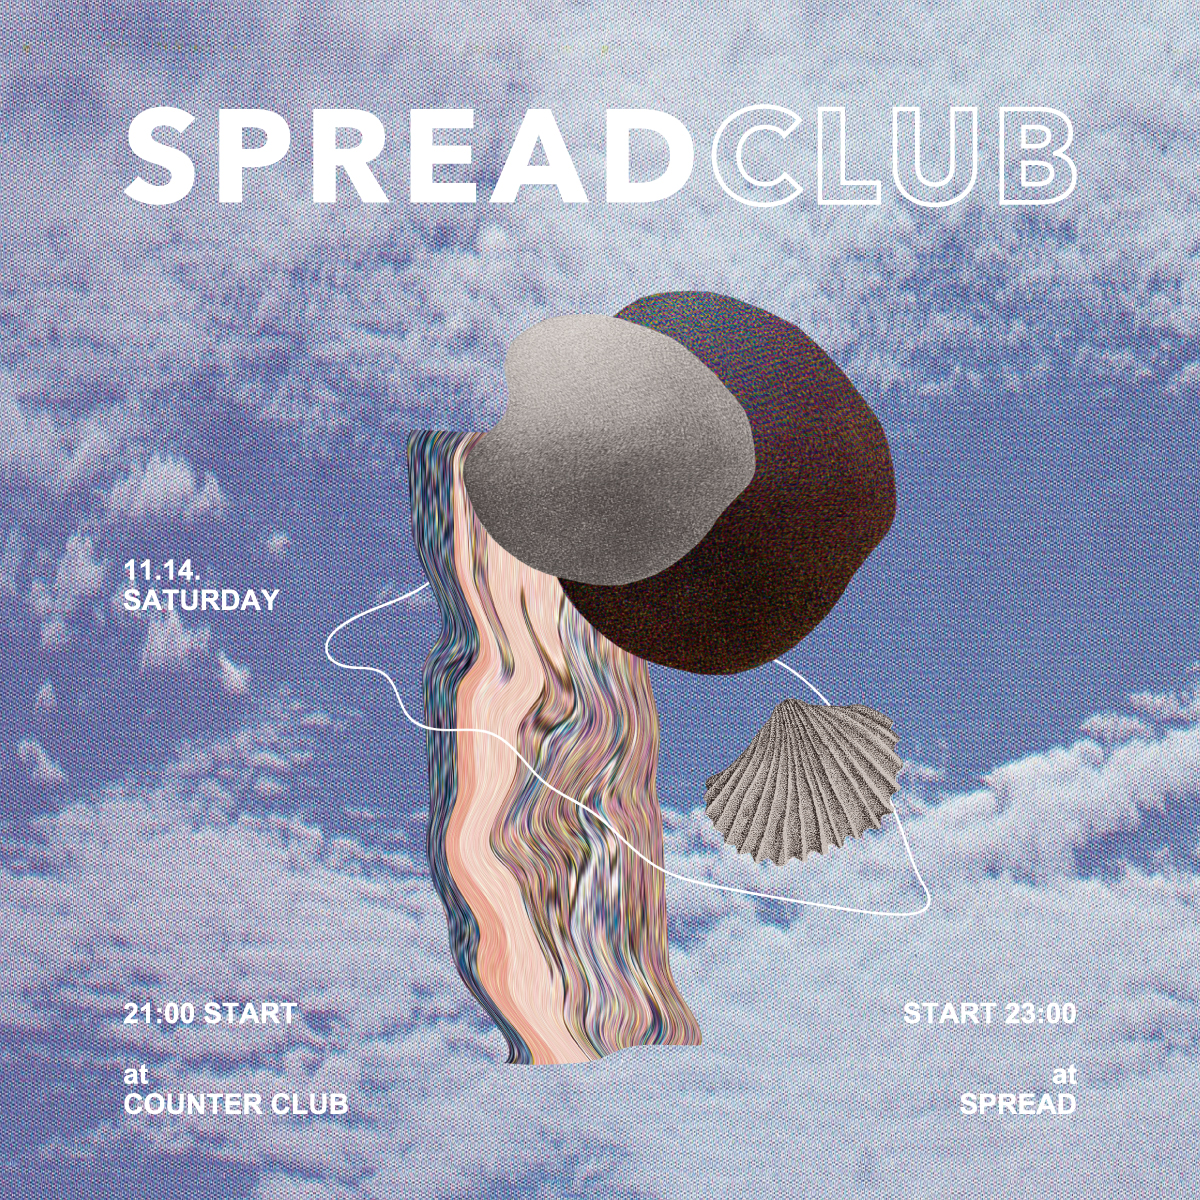 SPREAD CLUB